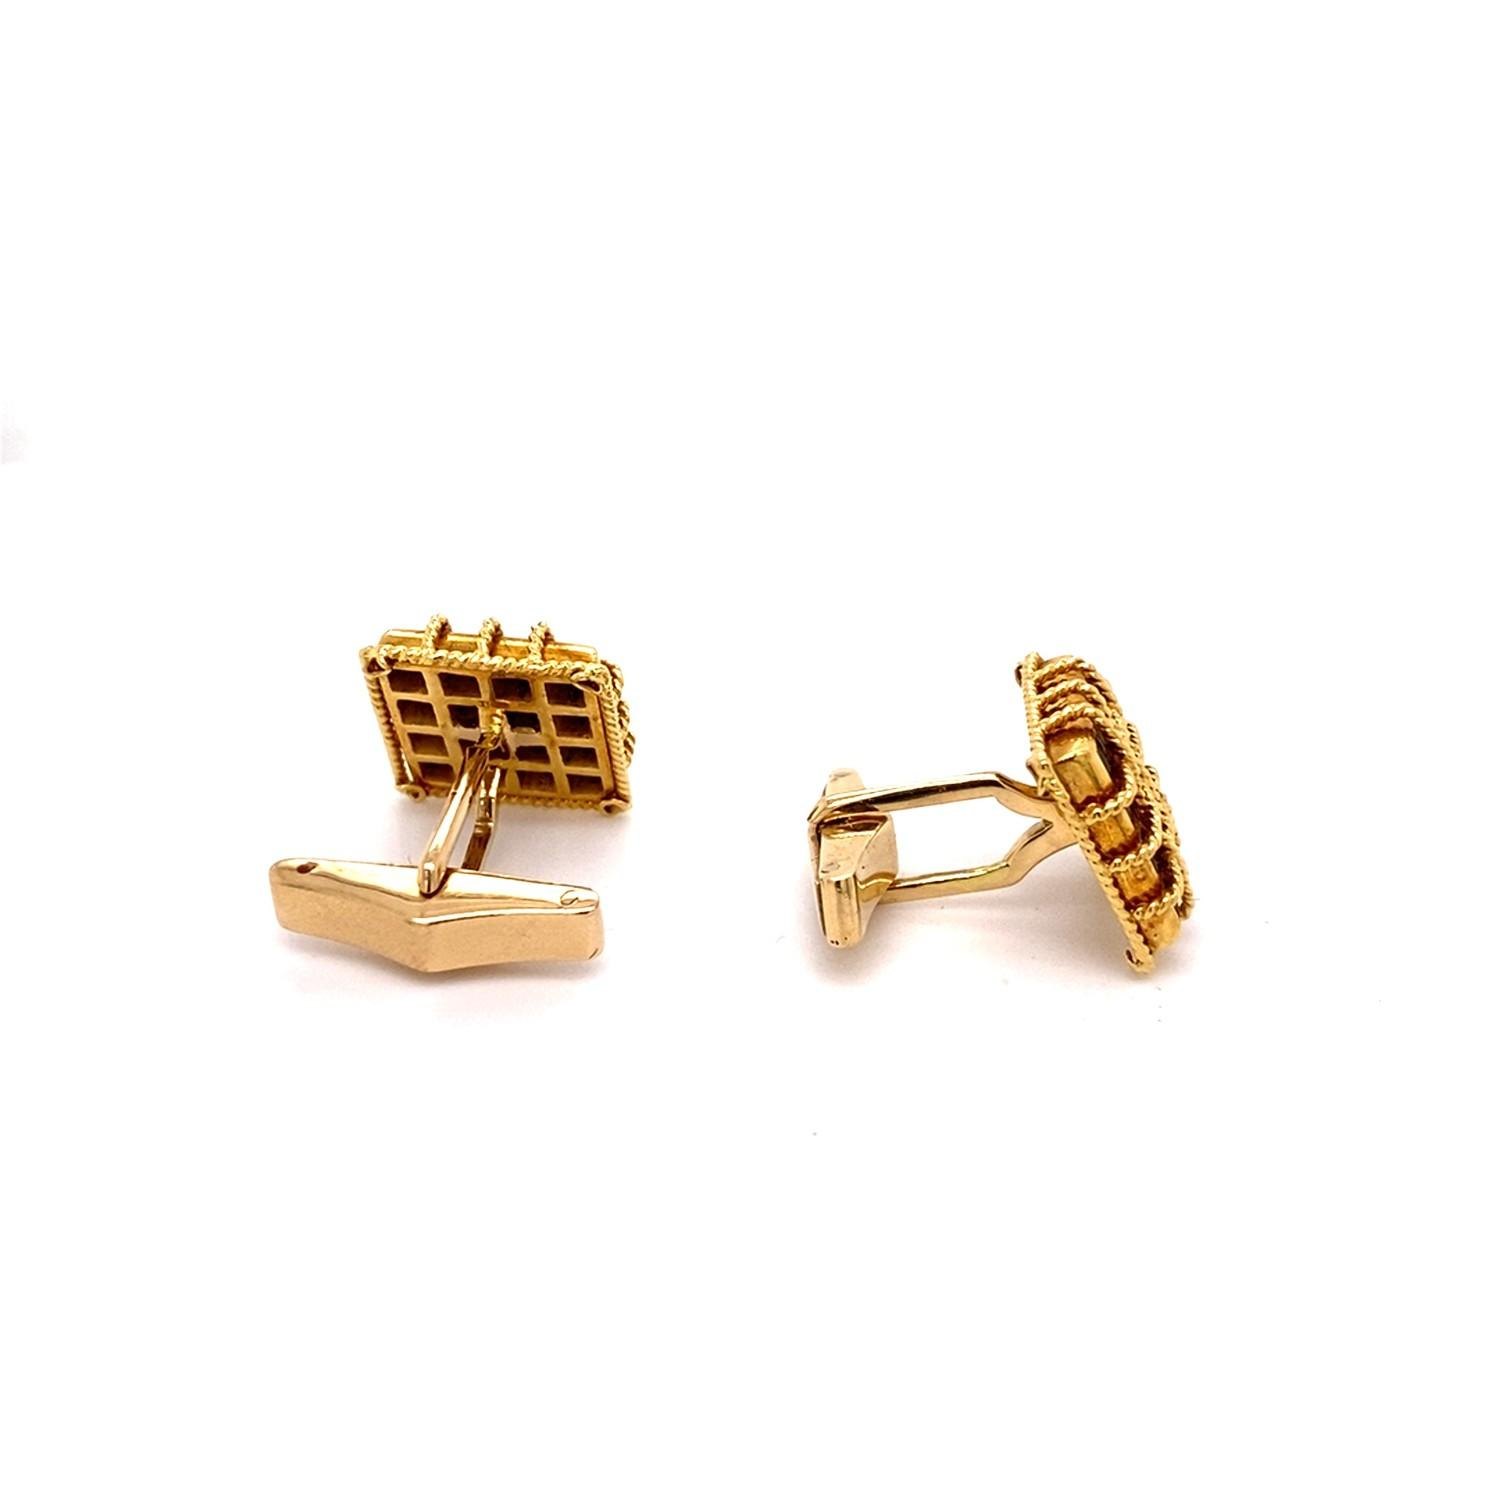 A pair of Vintage Kutchinsky pave set Sapphire Cufflinks mounted in 18ct yellow gold. Kutchinsky, - Image 3 of 4